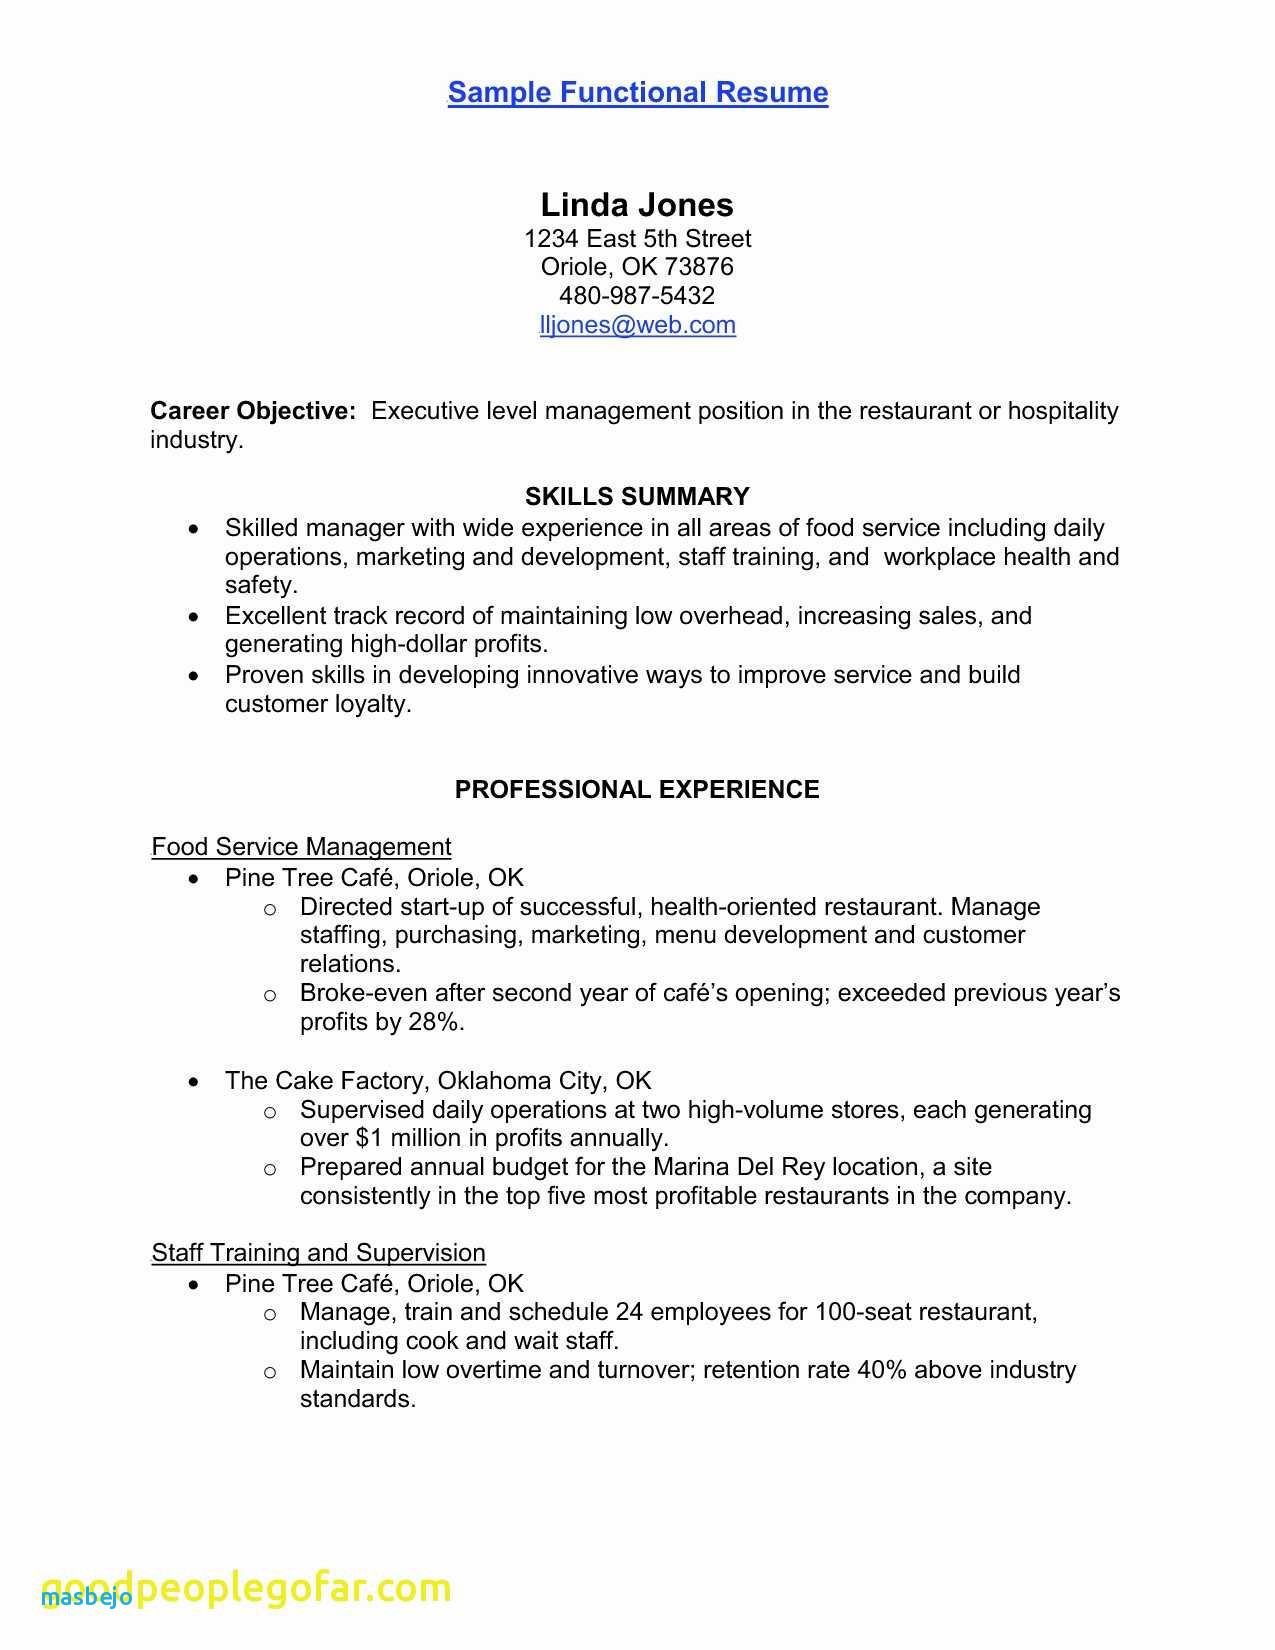 Sales Resume Summary - Sales Resumes Sales Resume Summary Elegant Pharmacy Resume Fresh